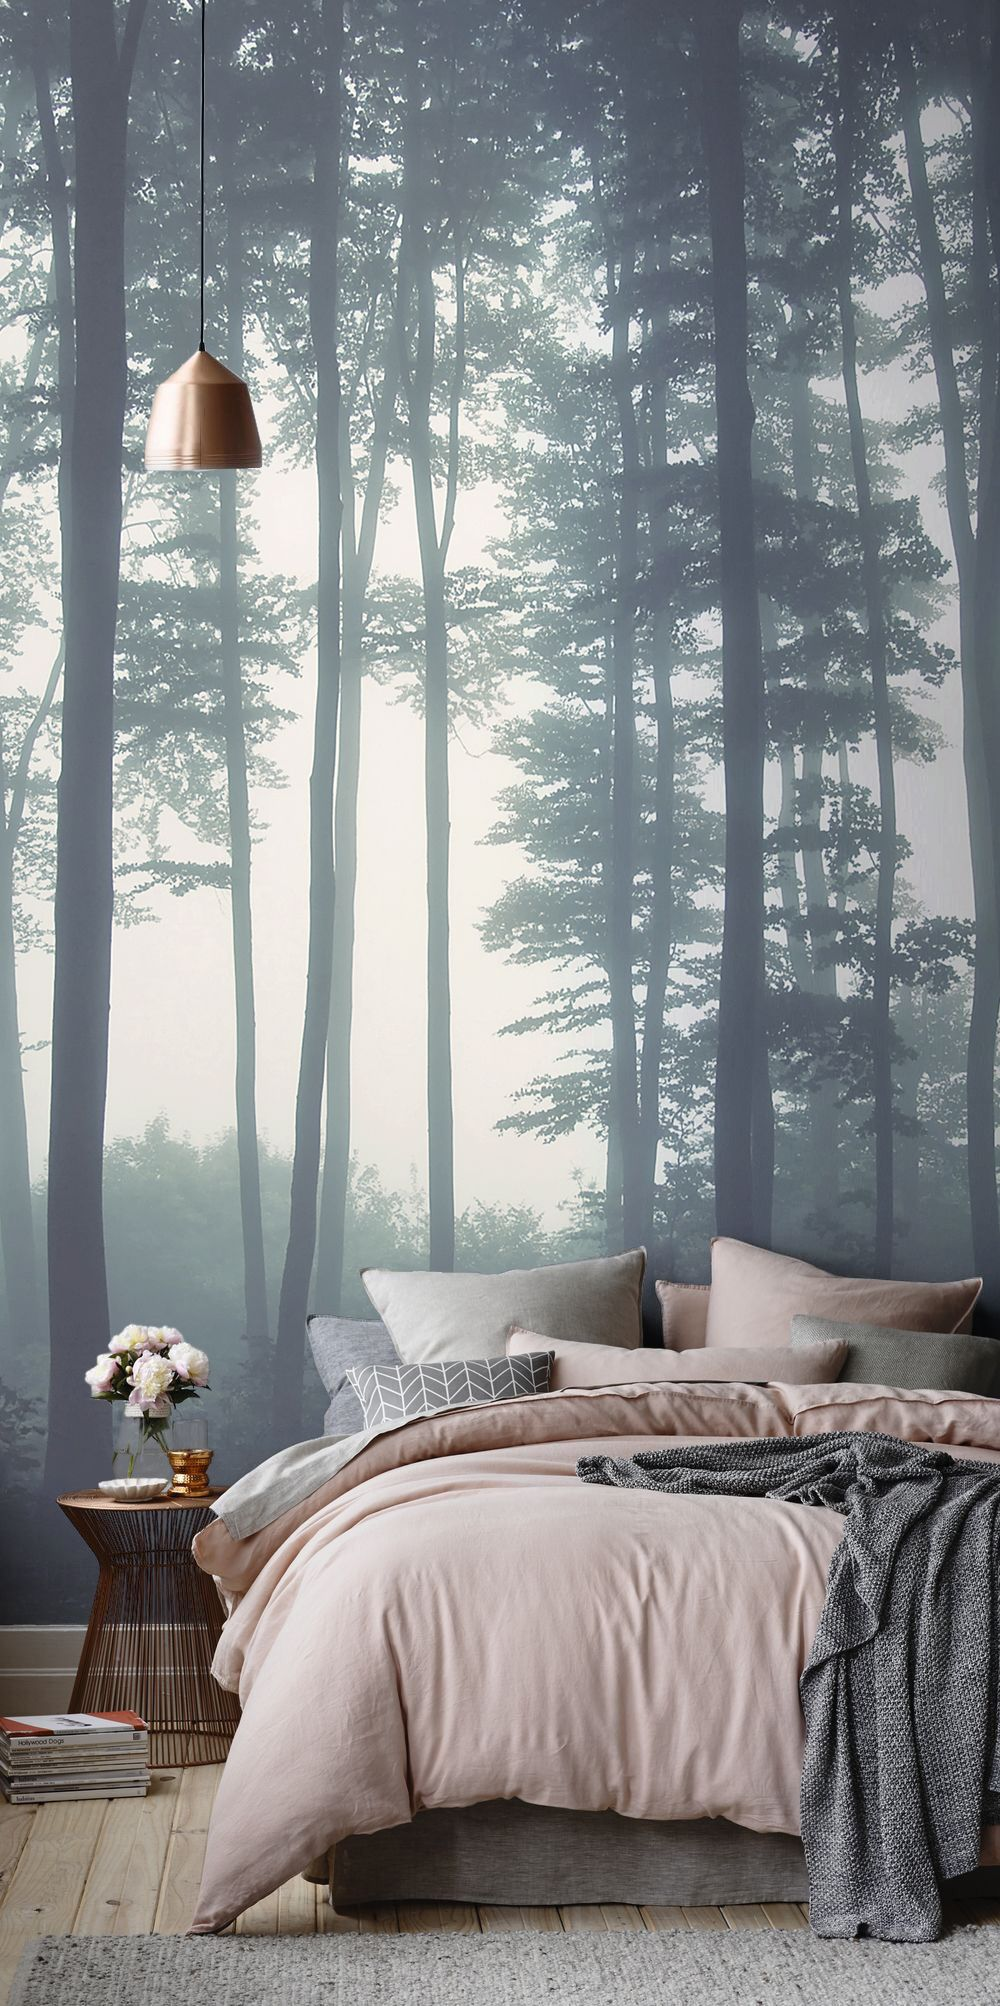 Wall Murals Nature 9 nature wallpapers for lovers of the outdoors | tree wall murals